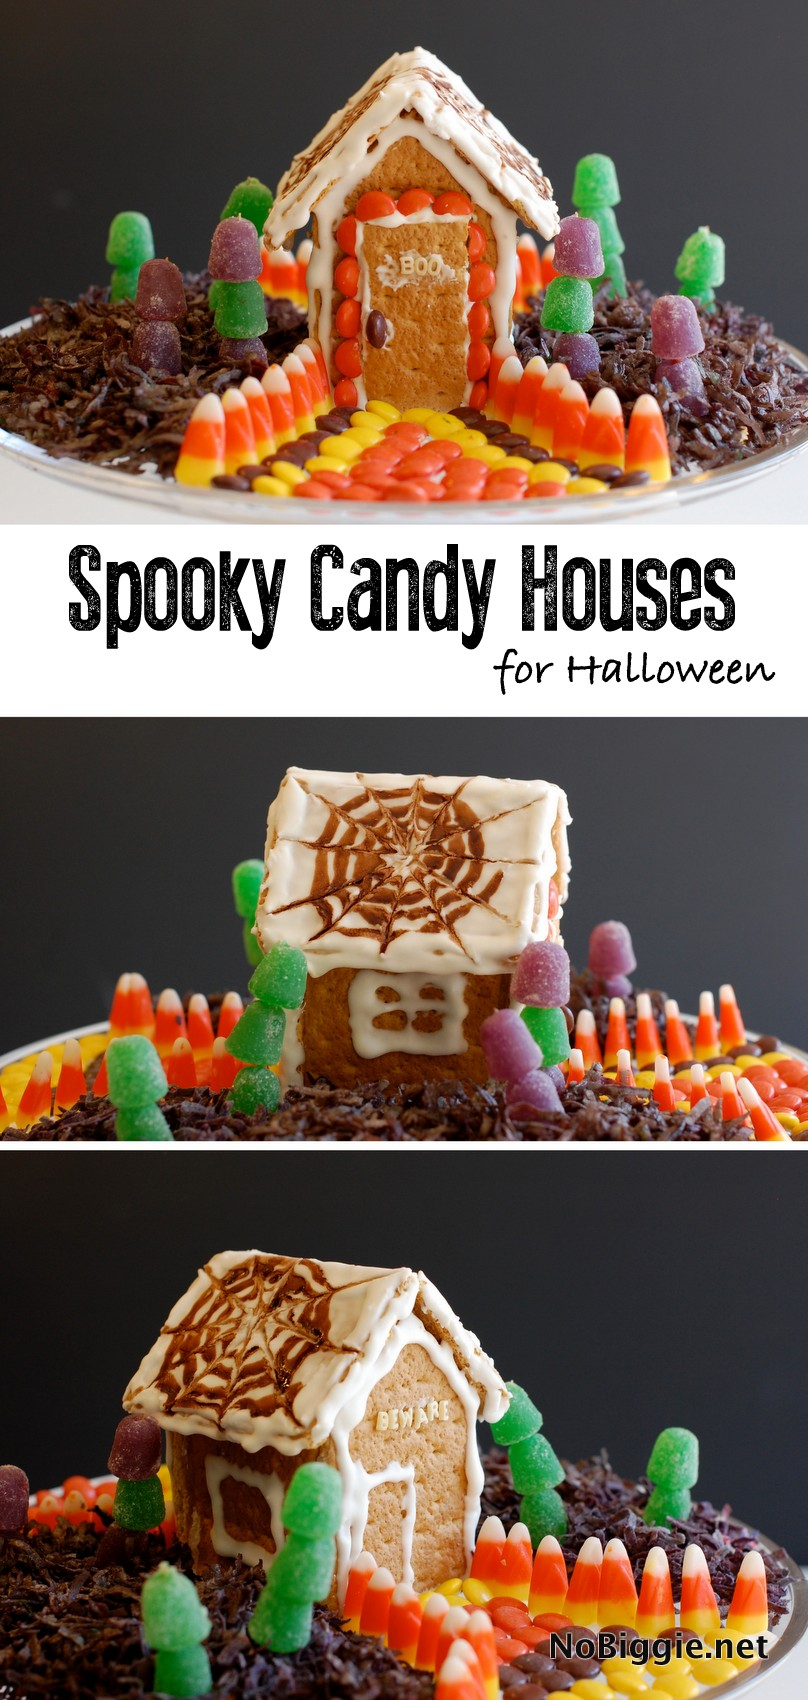 Candy Houses for Halloween | 25+ Halloween crafts for kids